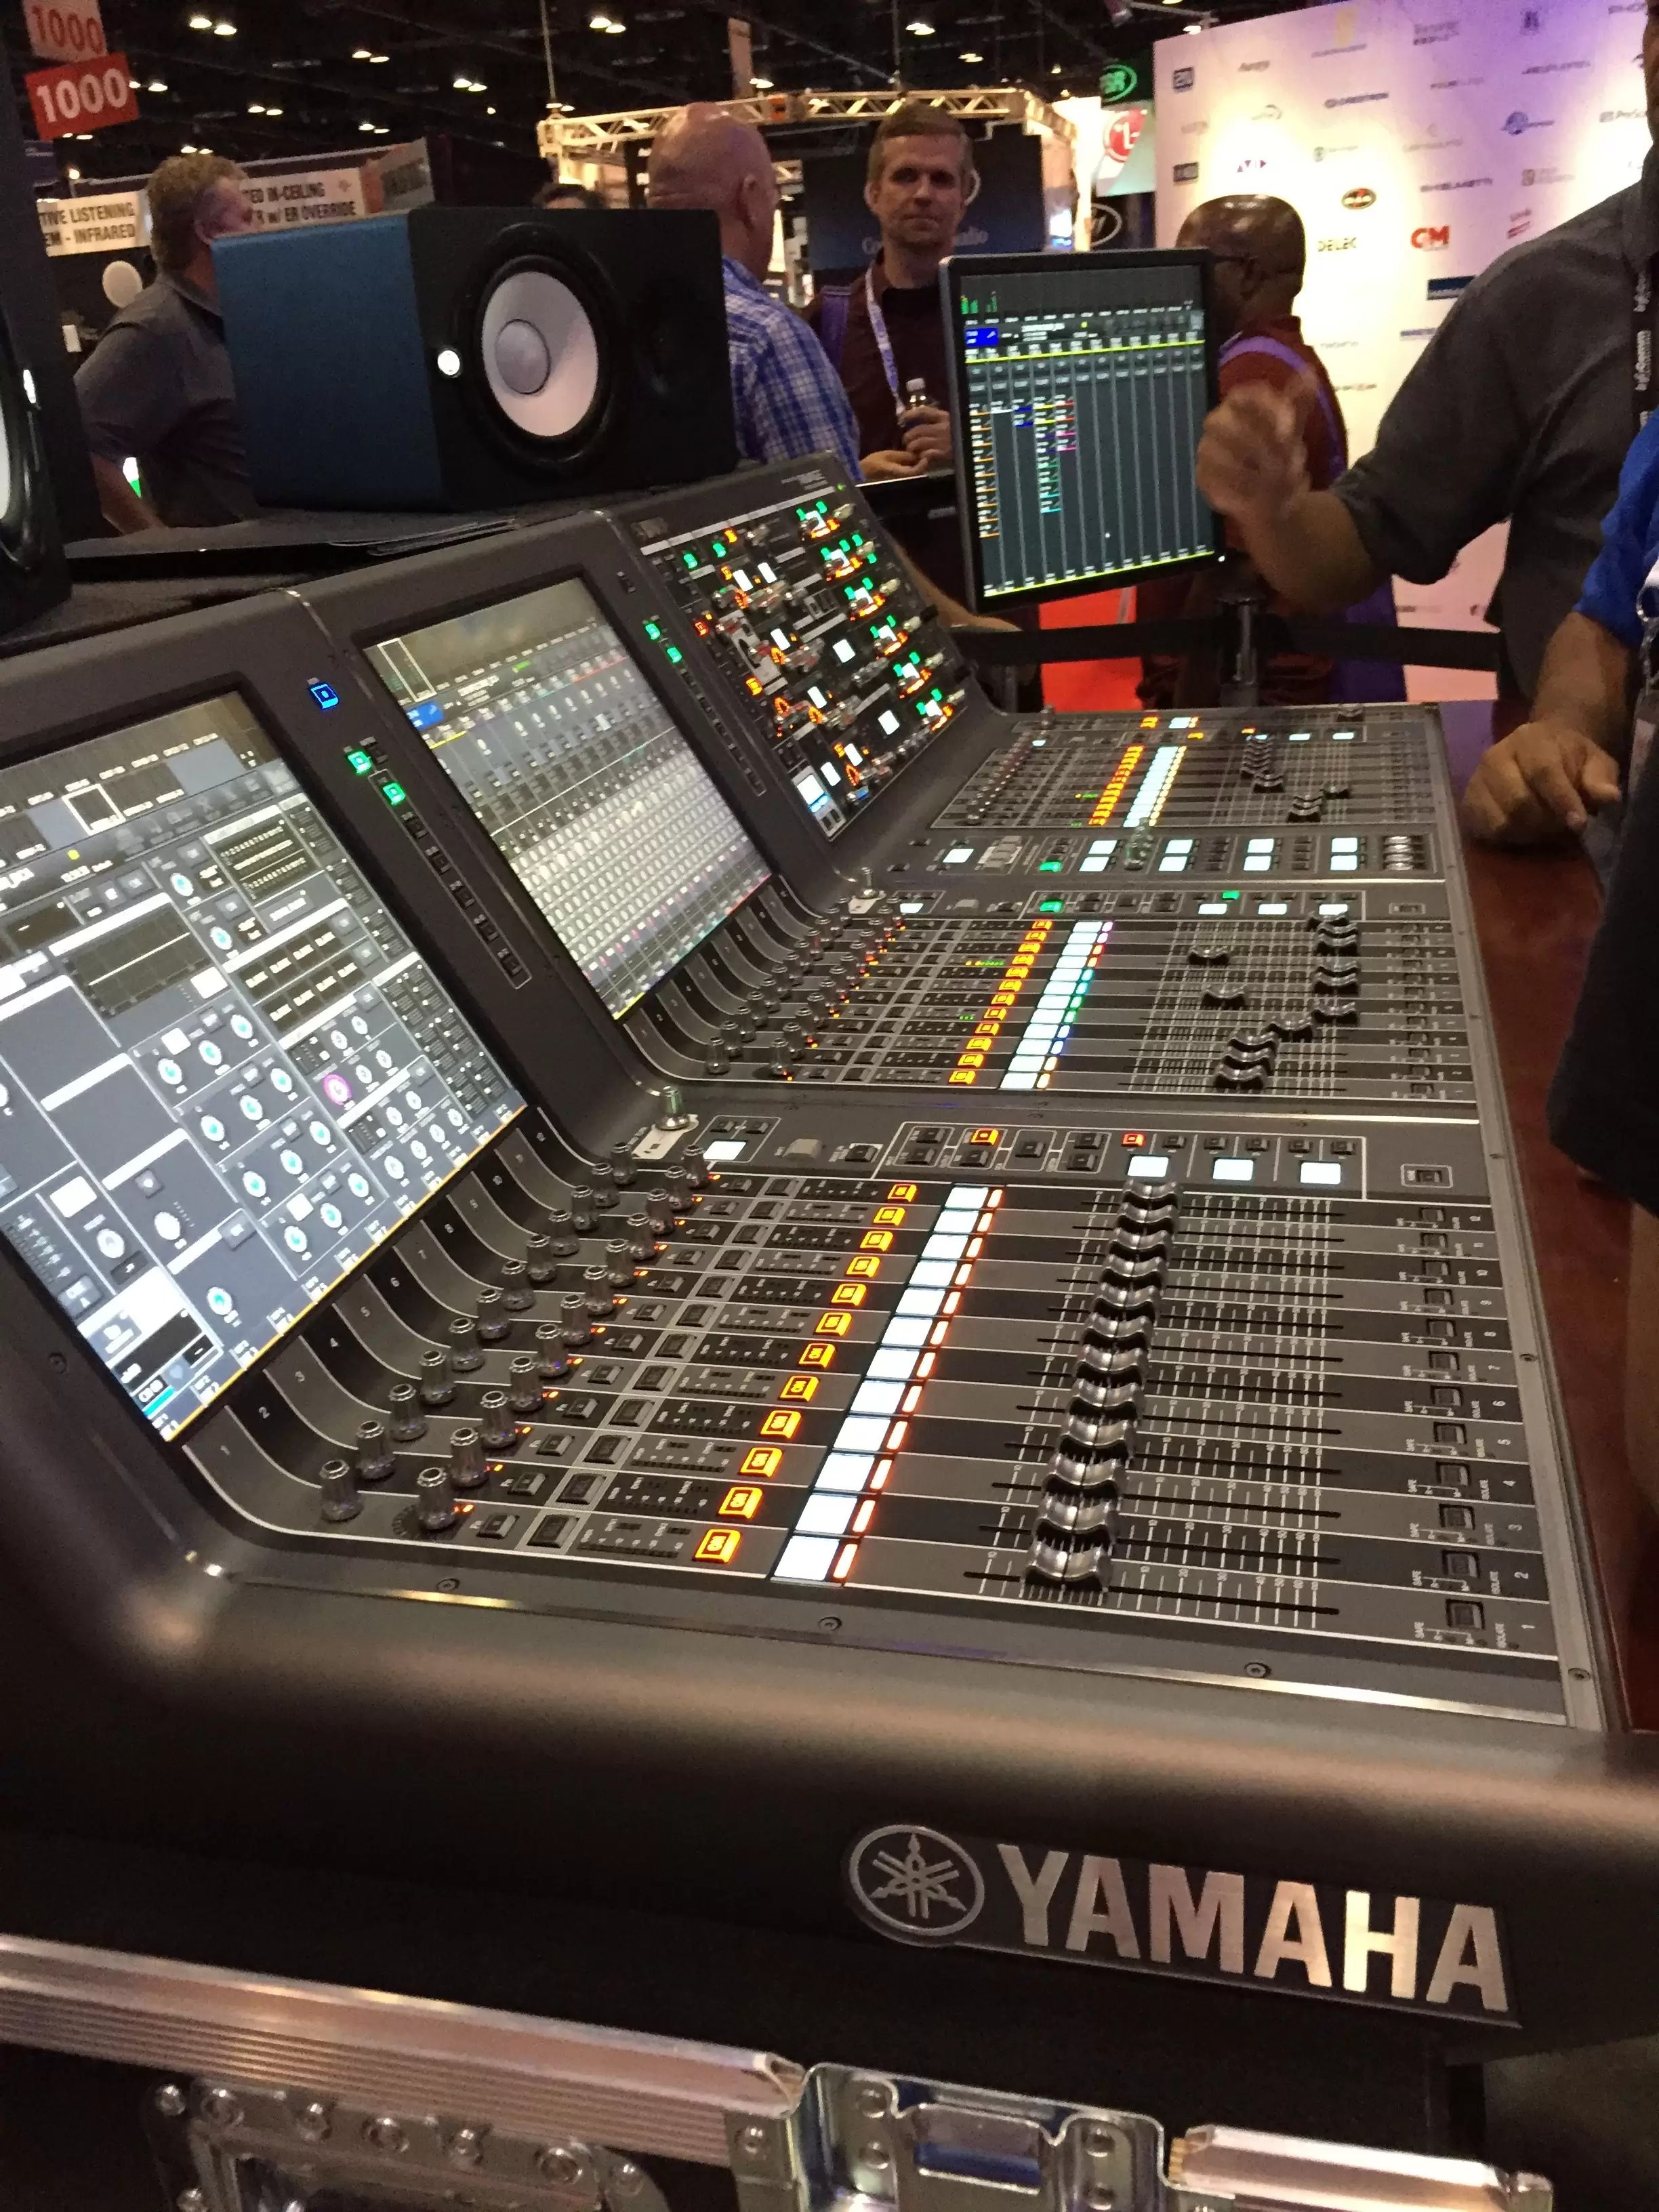 YAMAHA Rivage PM10 Large Frame Digital Mixing Console